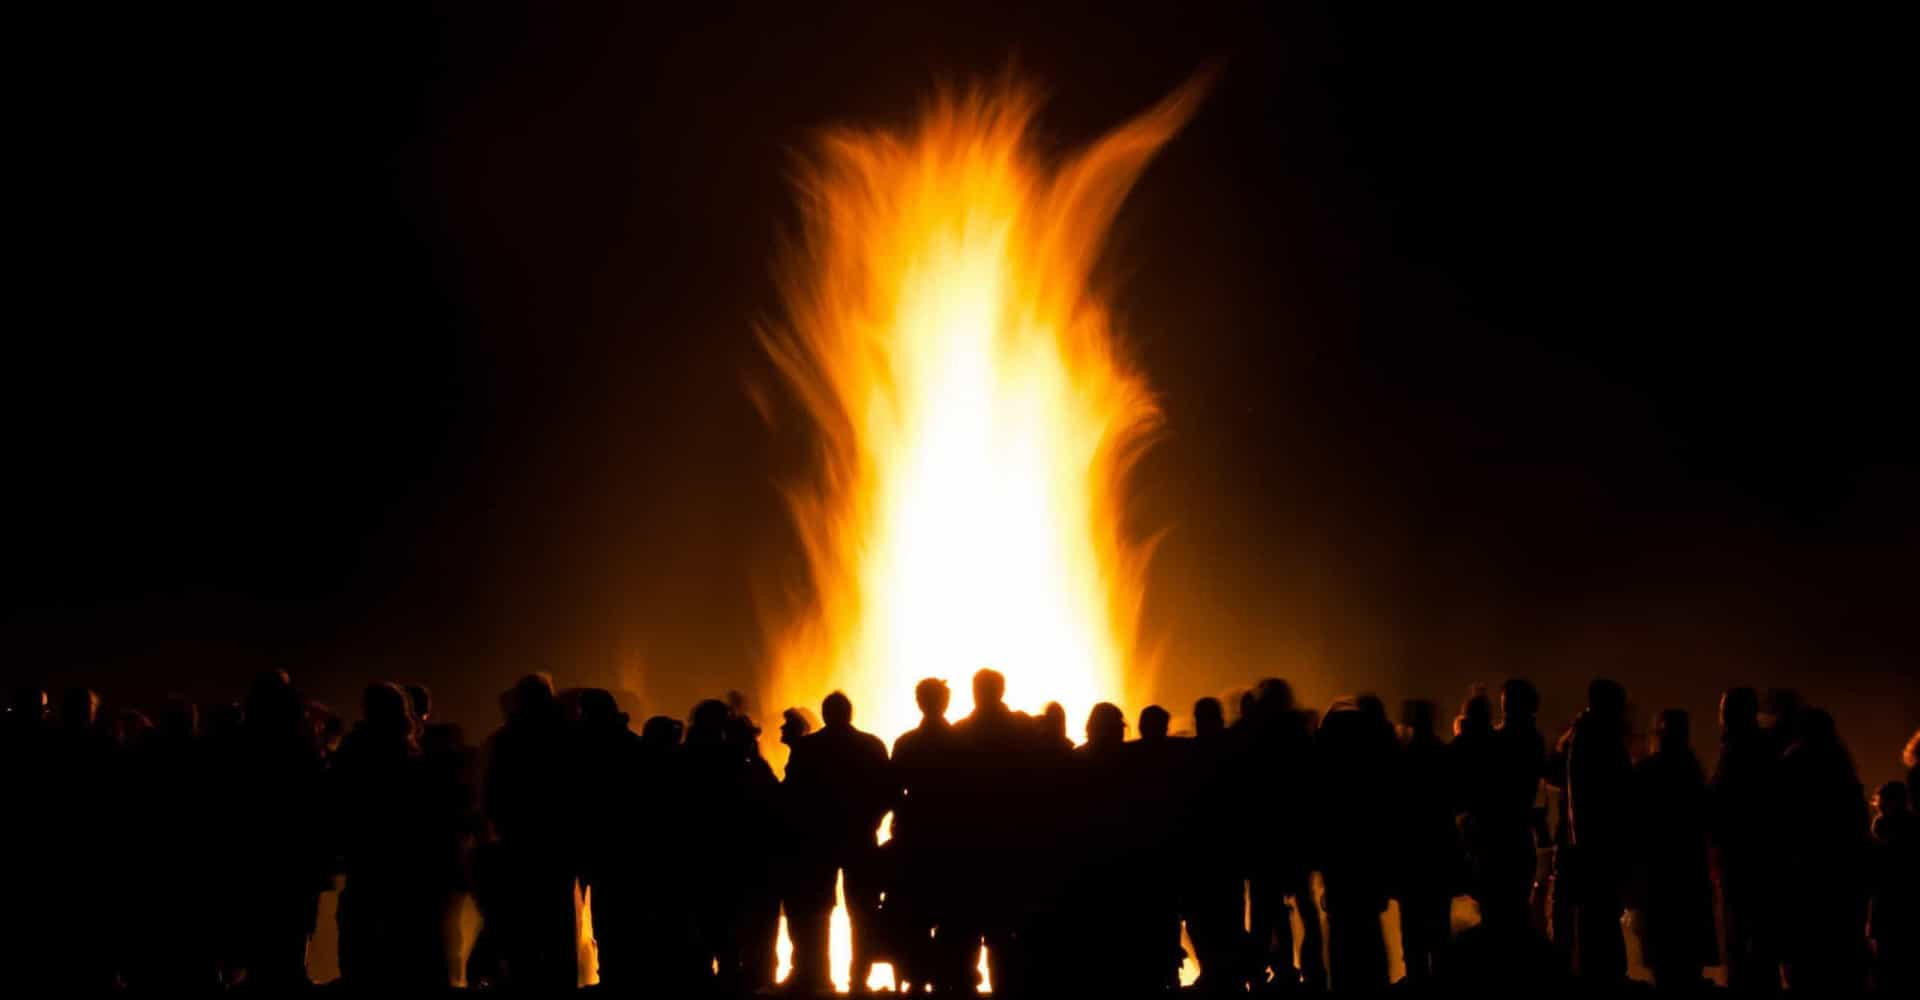 Discover the real meaning of Bonfire Night